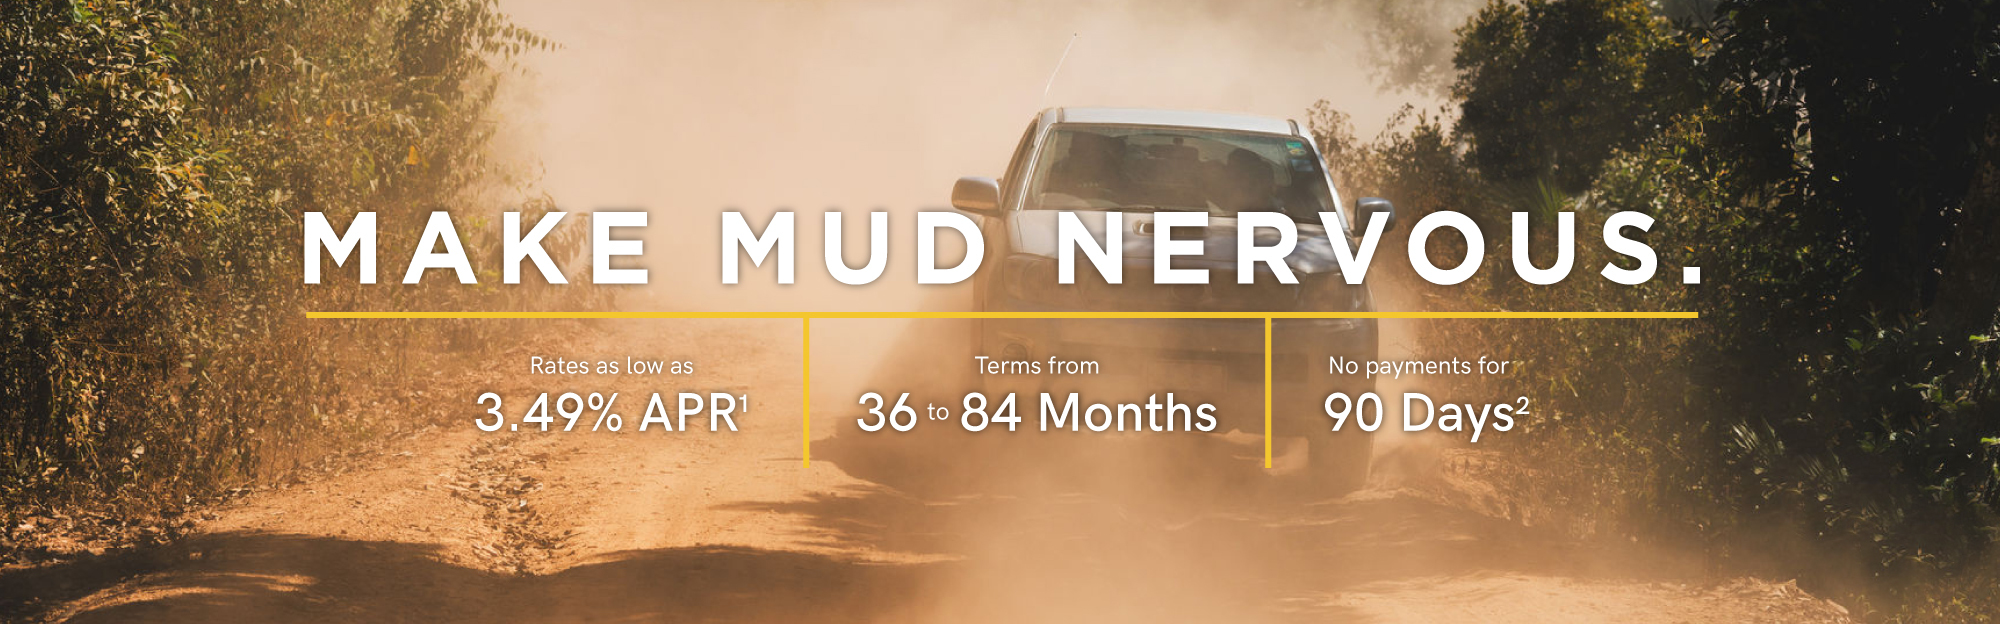 Make Mud Nervous